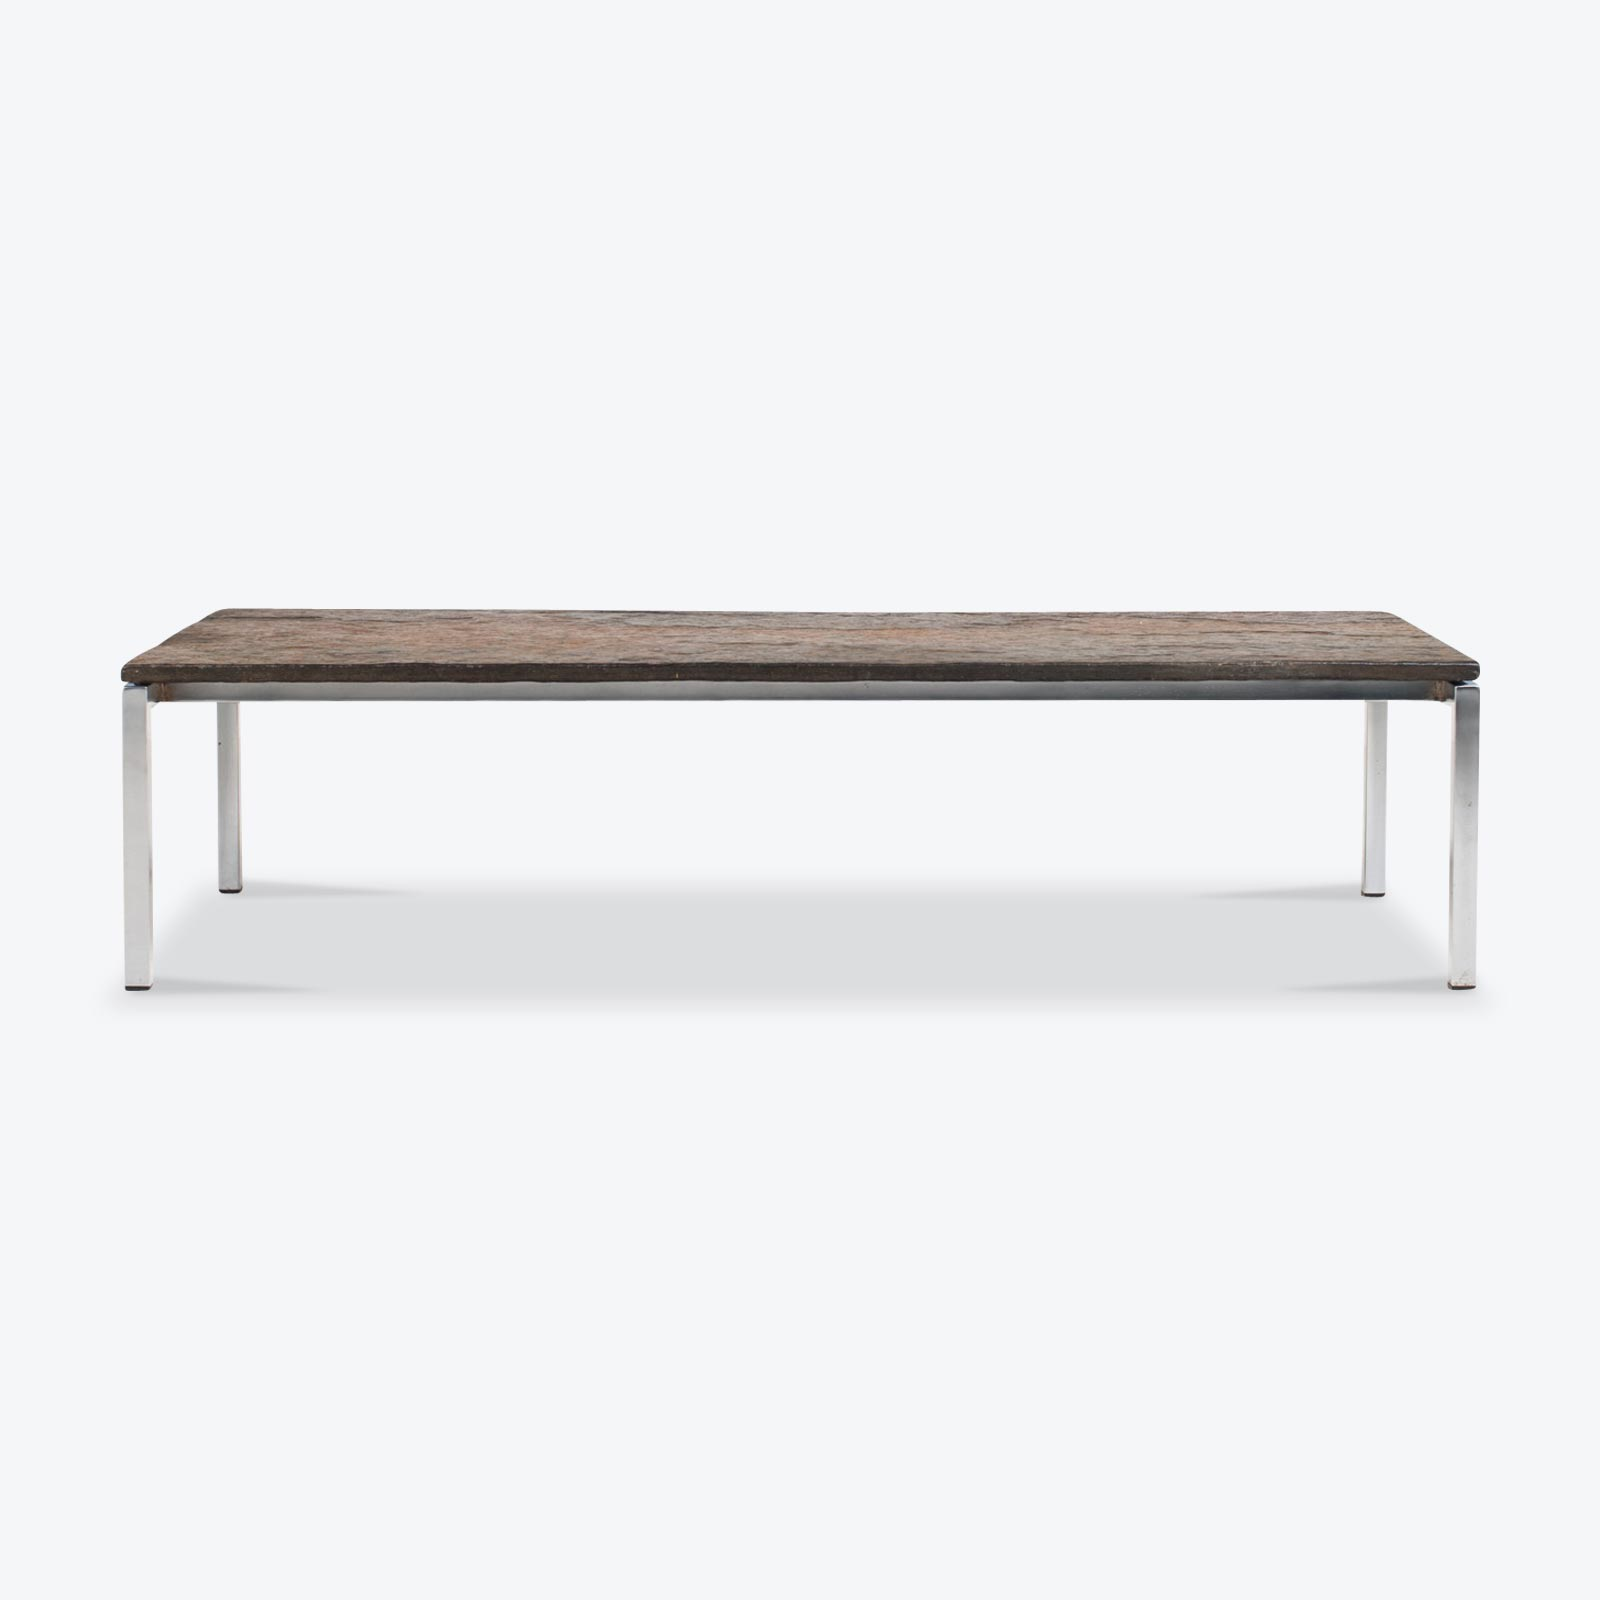 Rectangular Coffee Table With Slate And Chrome Base 1960s Netherlands 01